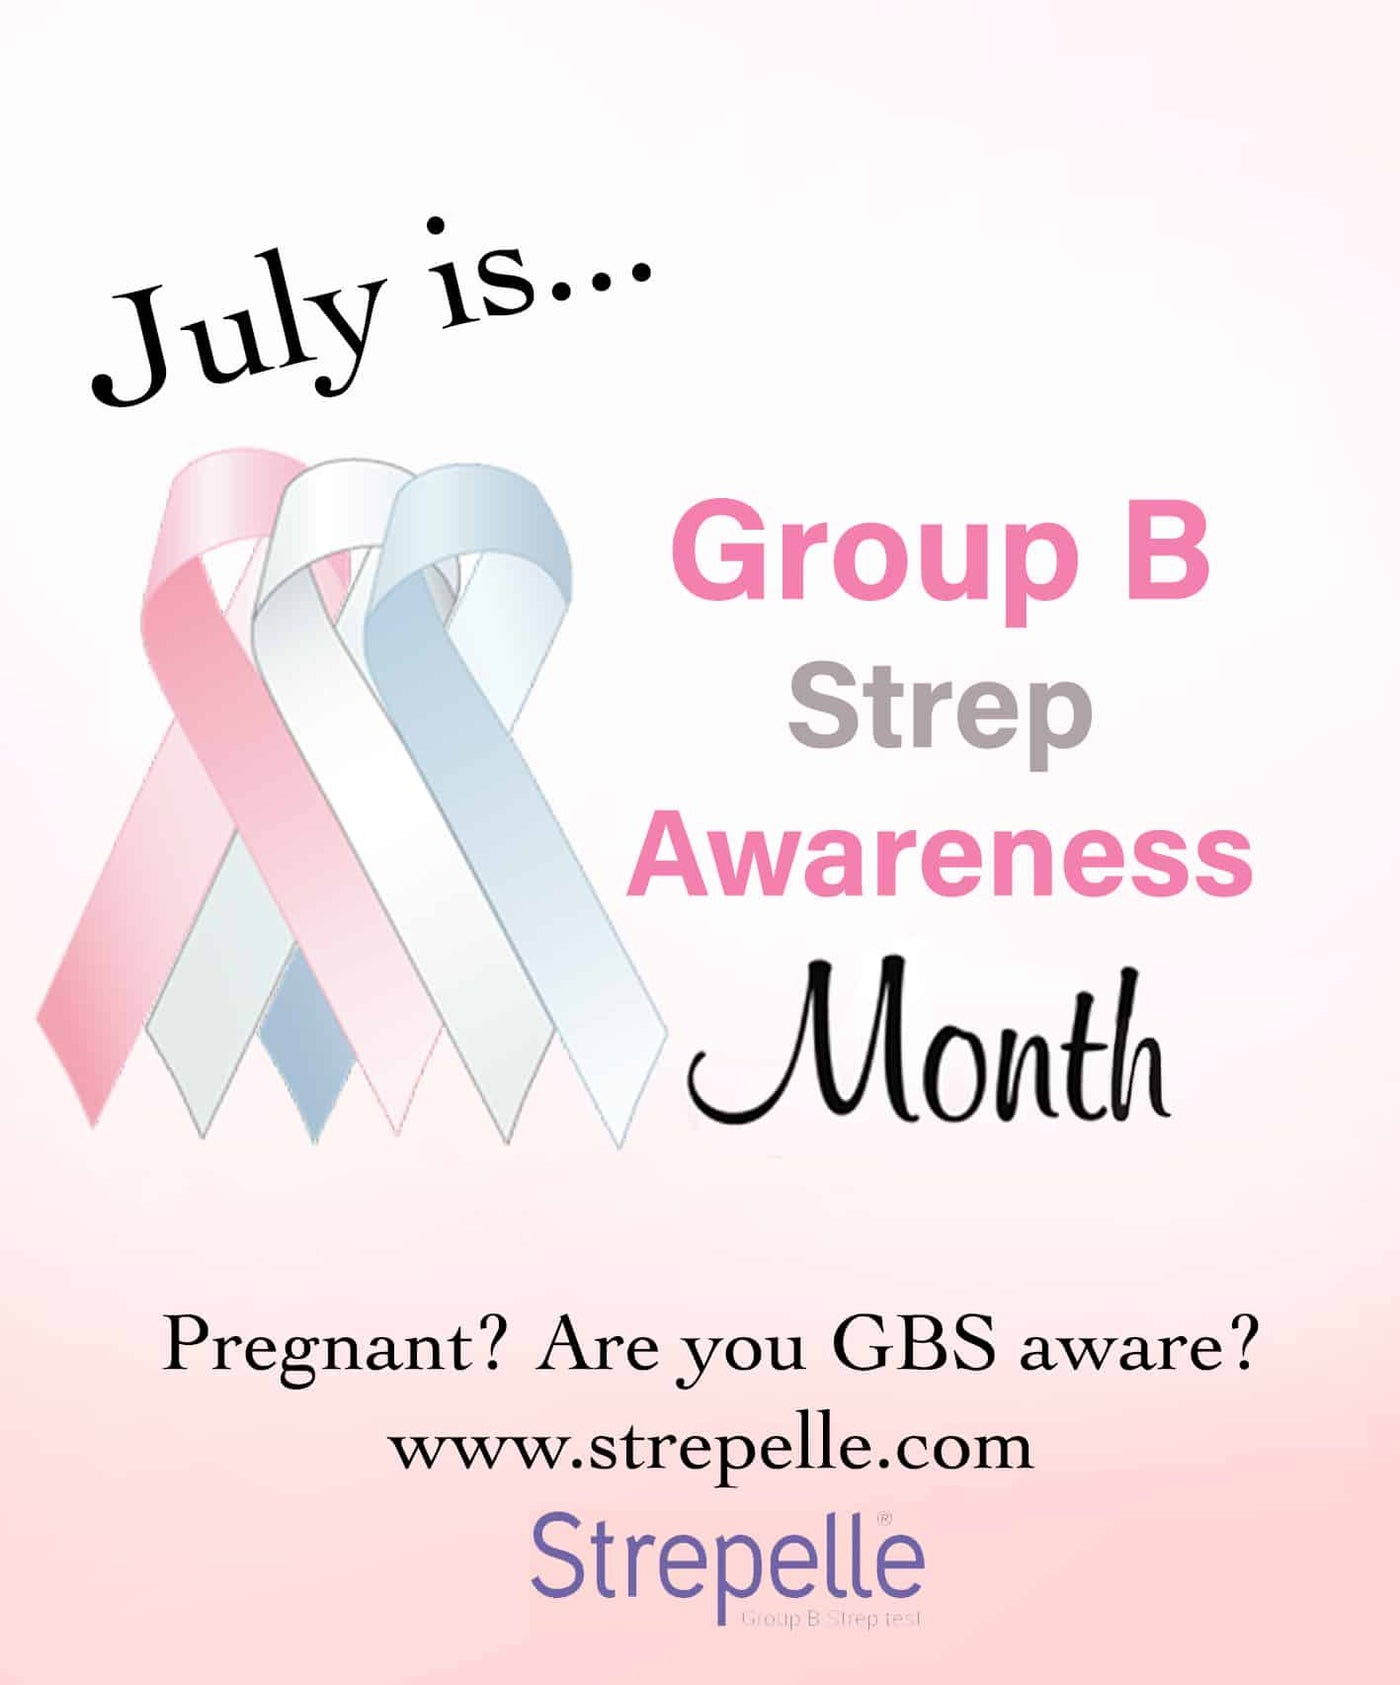 July is Group B Strep awareness month